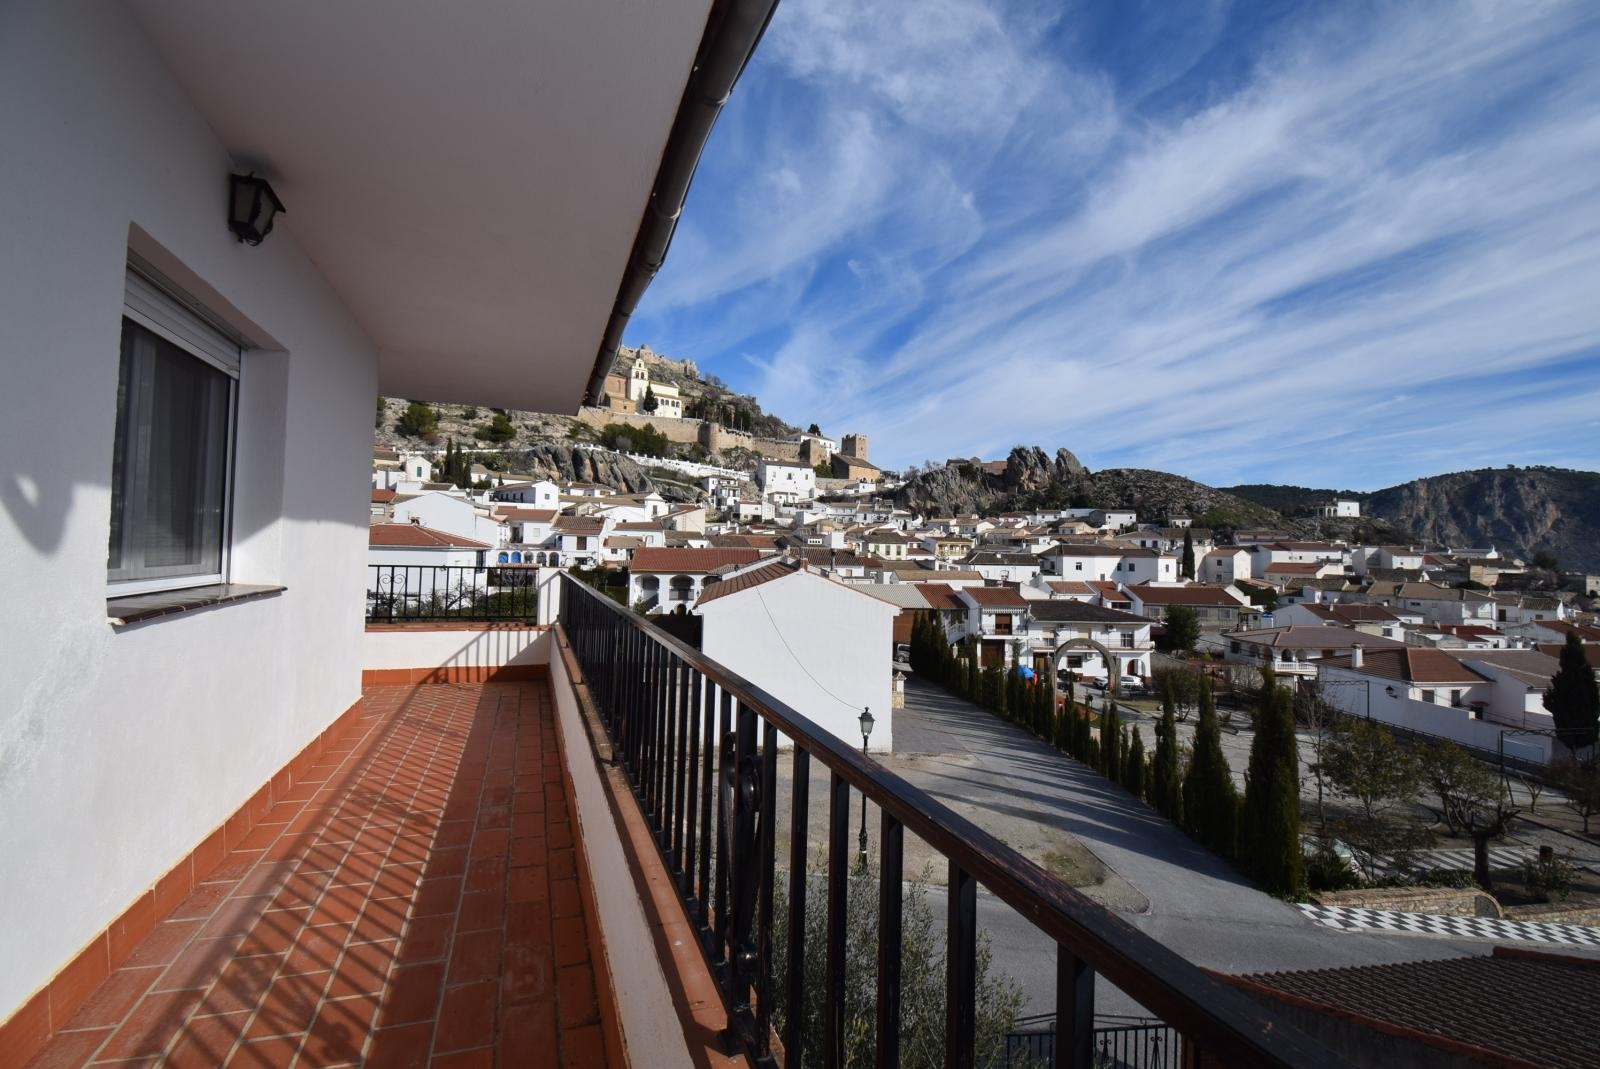 4 BED 2 BATH LOVELY DETACHED VILLA WITH STUNNING VIEWS